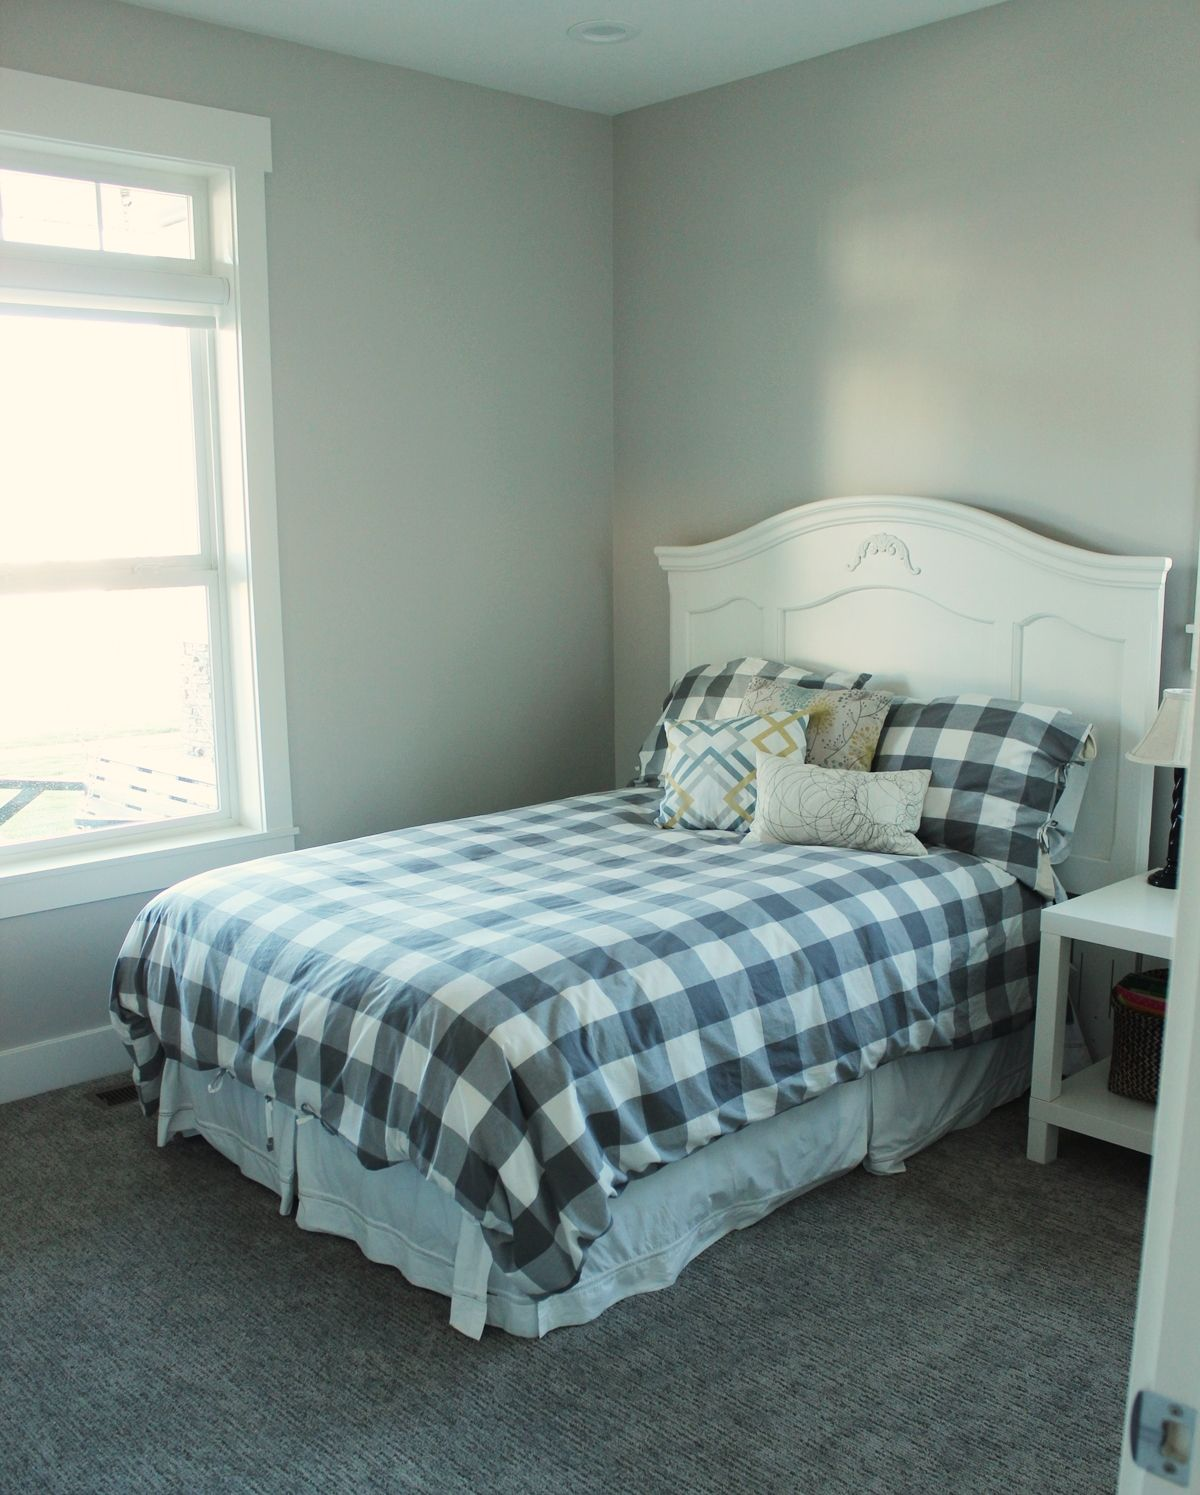 Similar Guest Bedroom Design